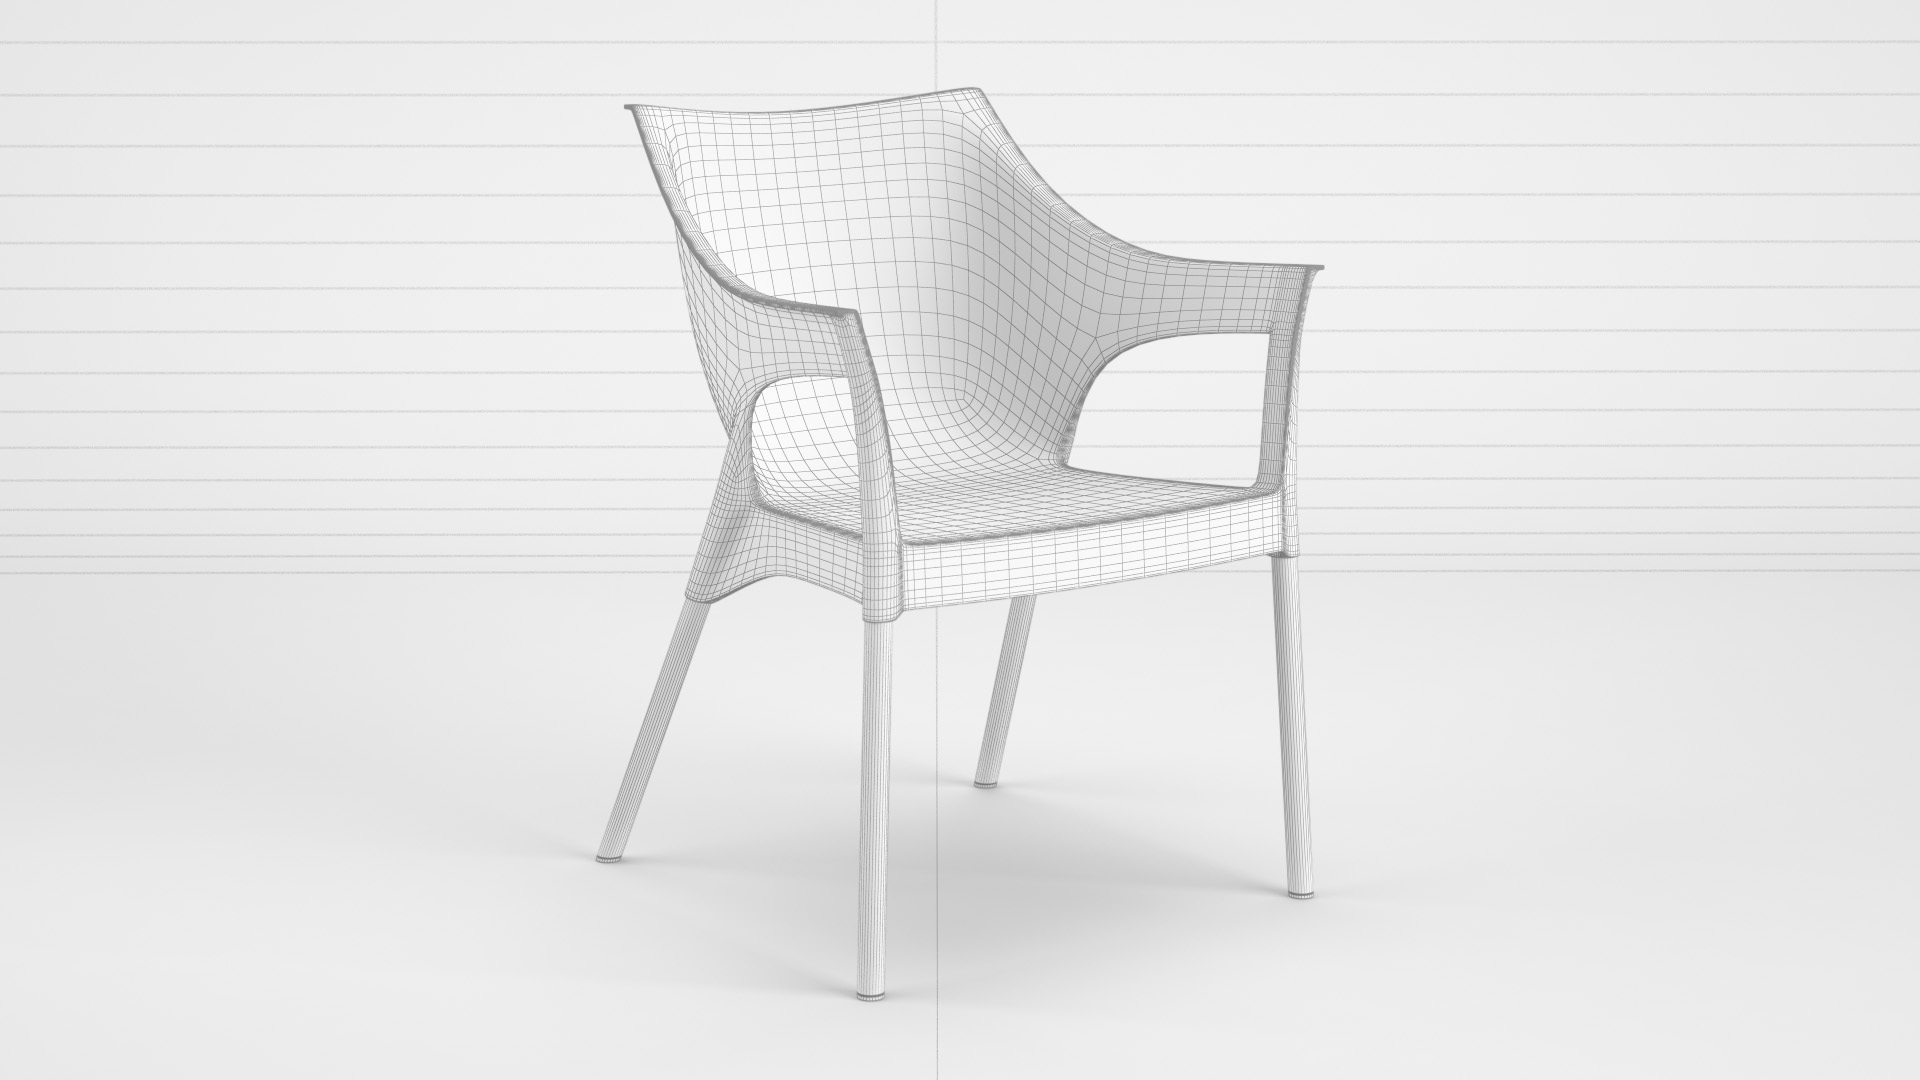 Pole_Chair_WhiteSet_01_wire_0000